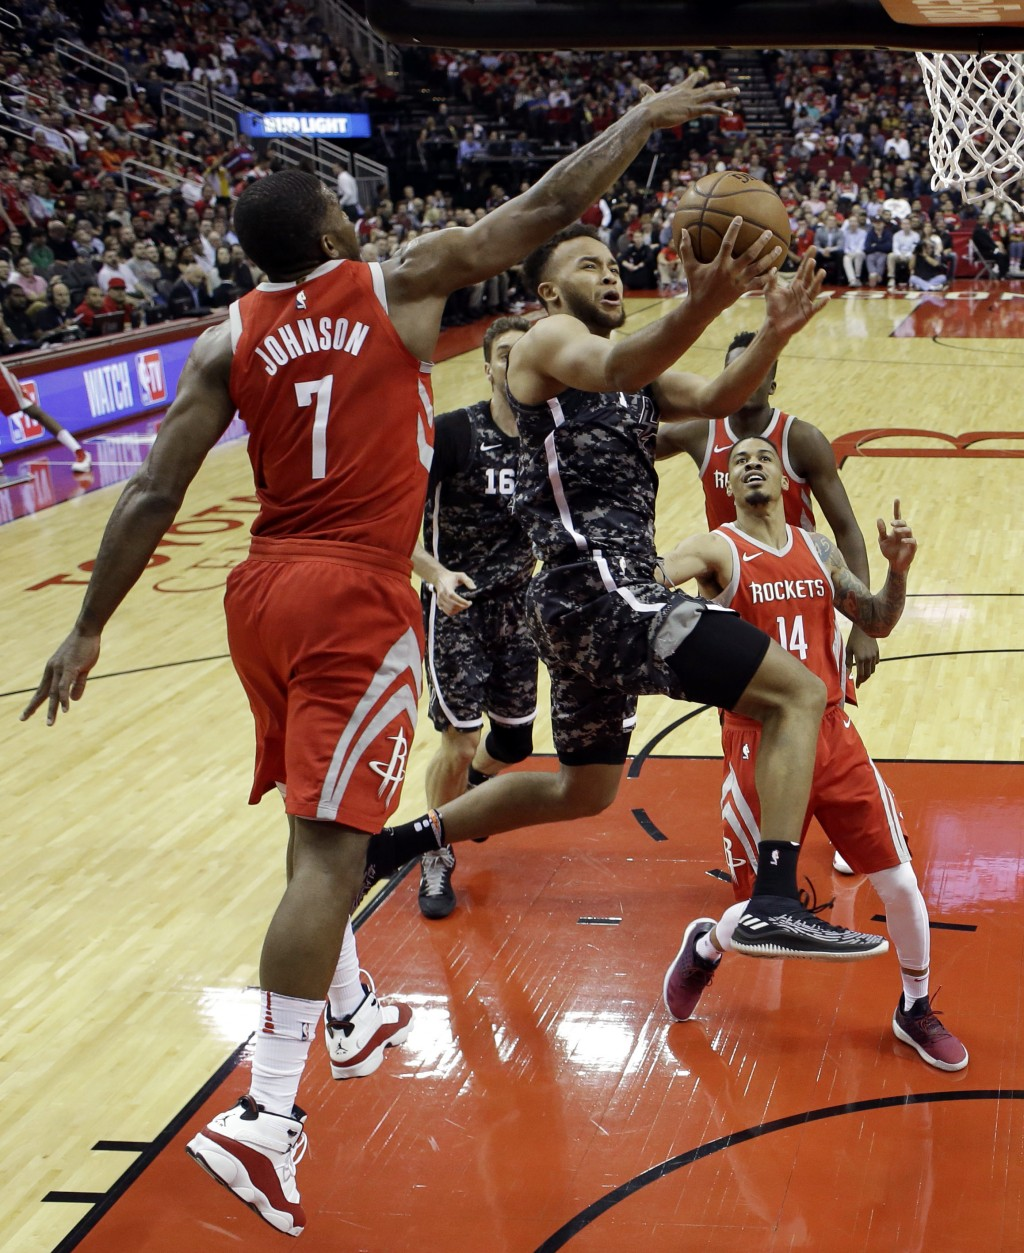 San Antonio Spurs' Kyle Anderson, center, goes up to shoot as Houston Rockets' Joe Johnson (7) defends during the first half of an NBA basketball game